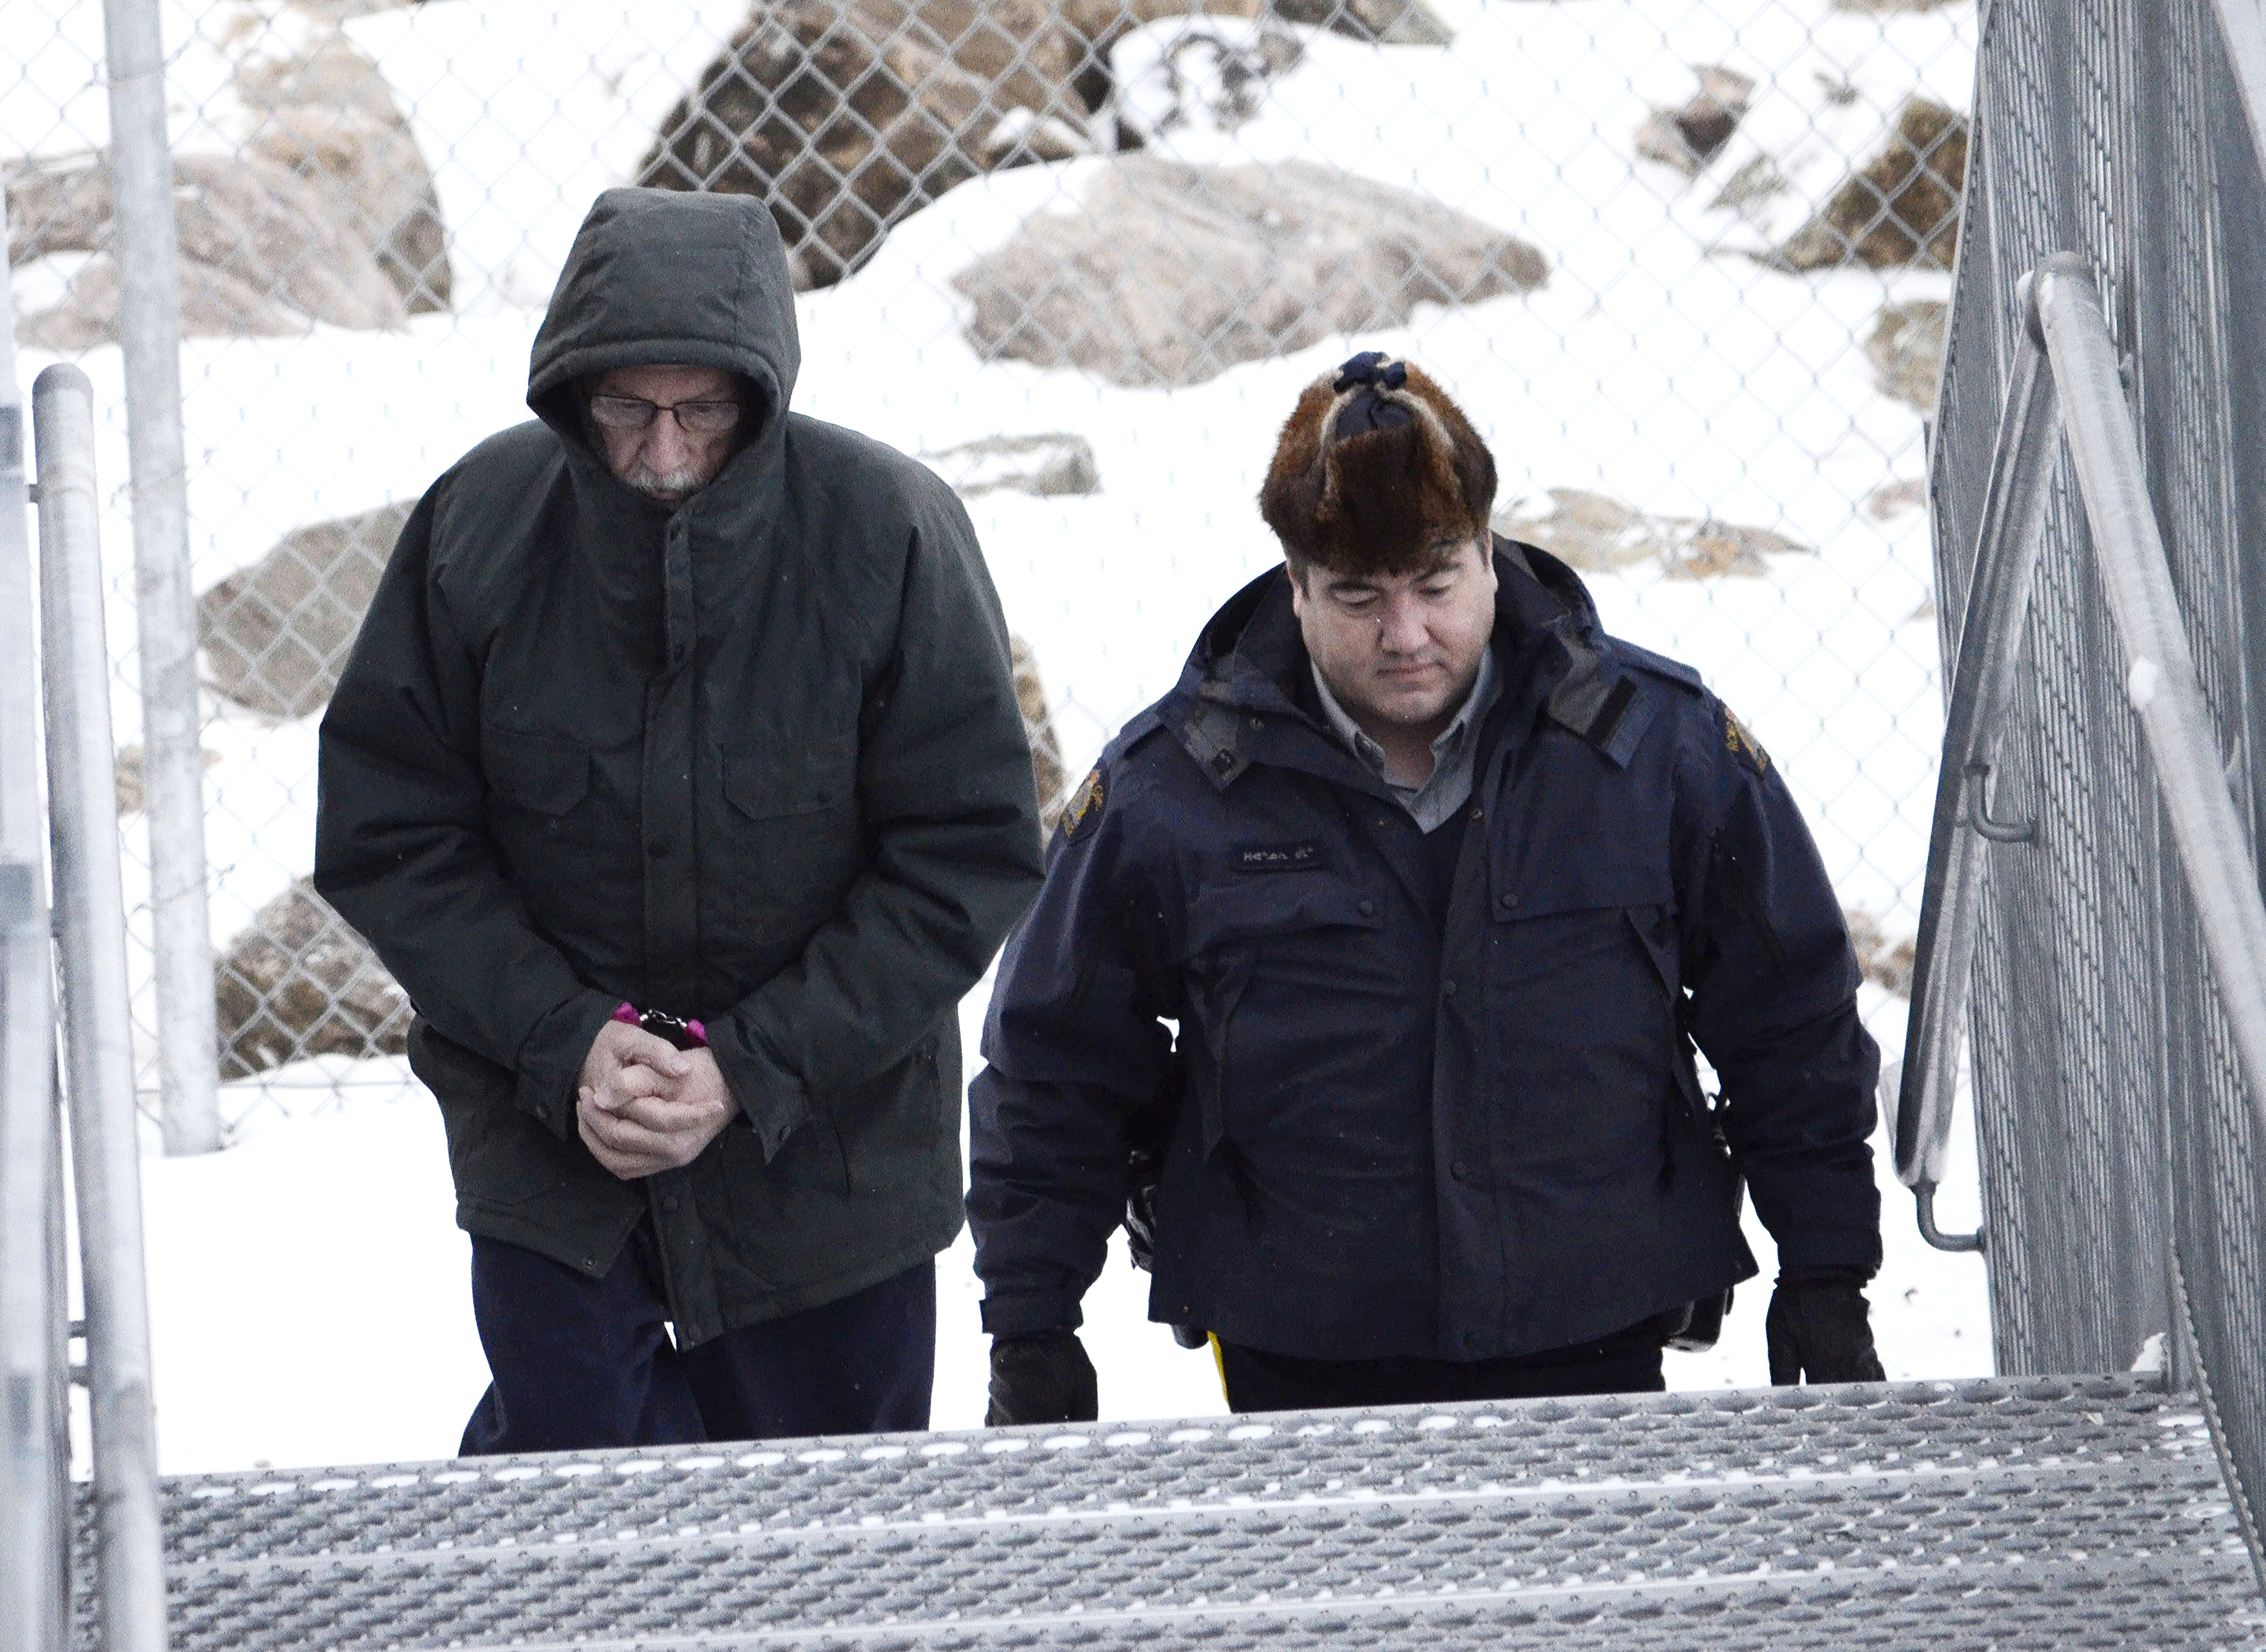 Eric Dejaeger is led into the Iqaluit courthouse building at a court appearance late last year. (FILE PHOTO)